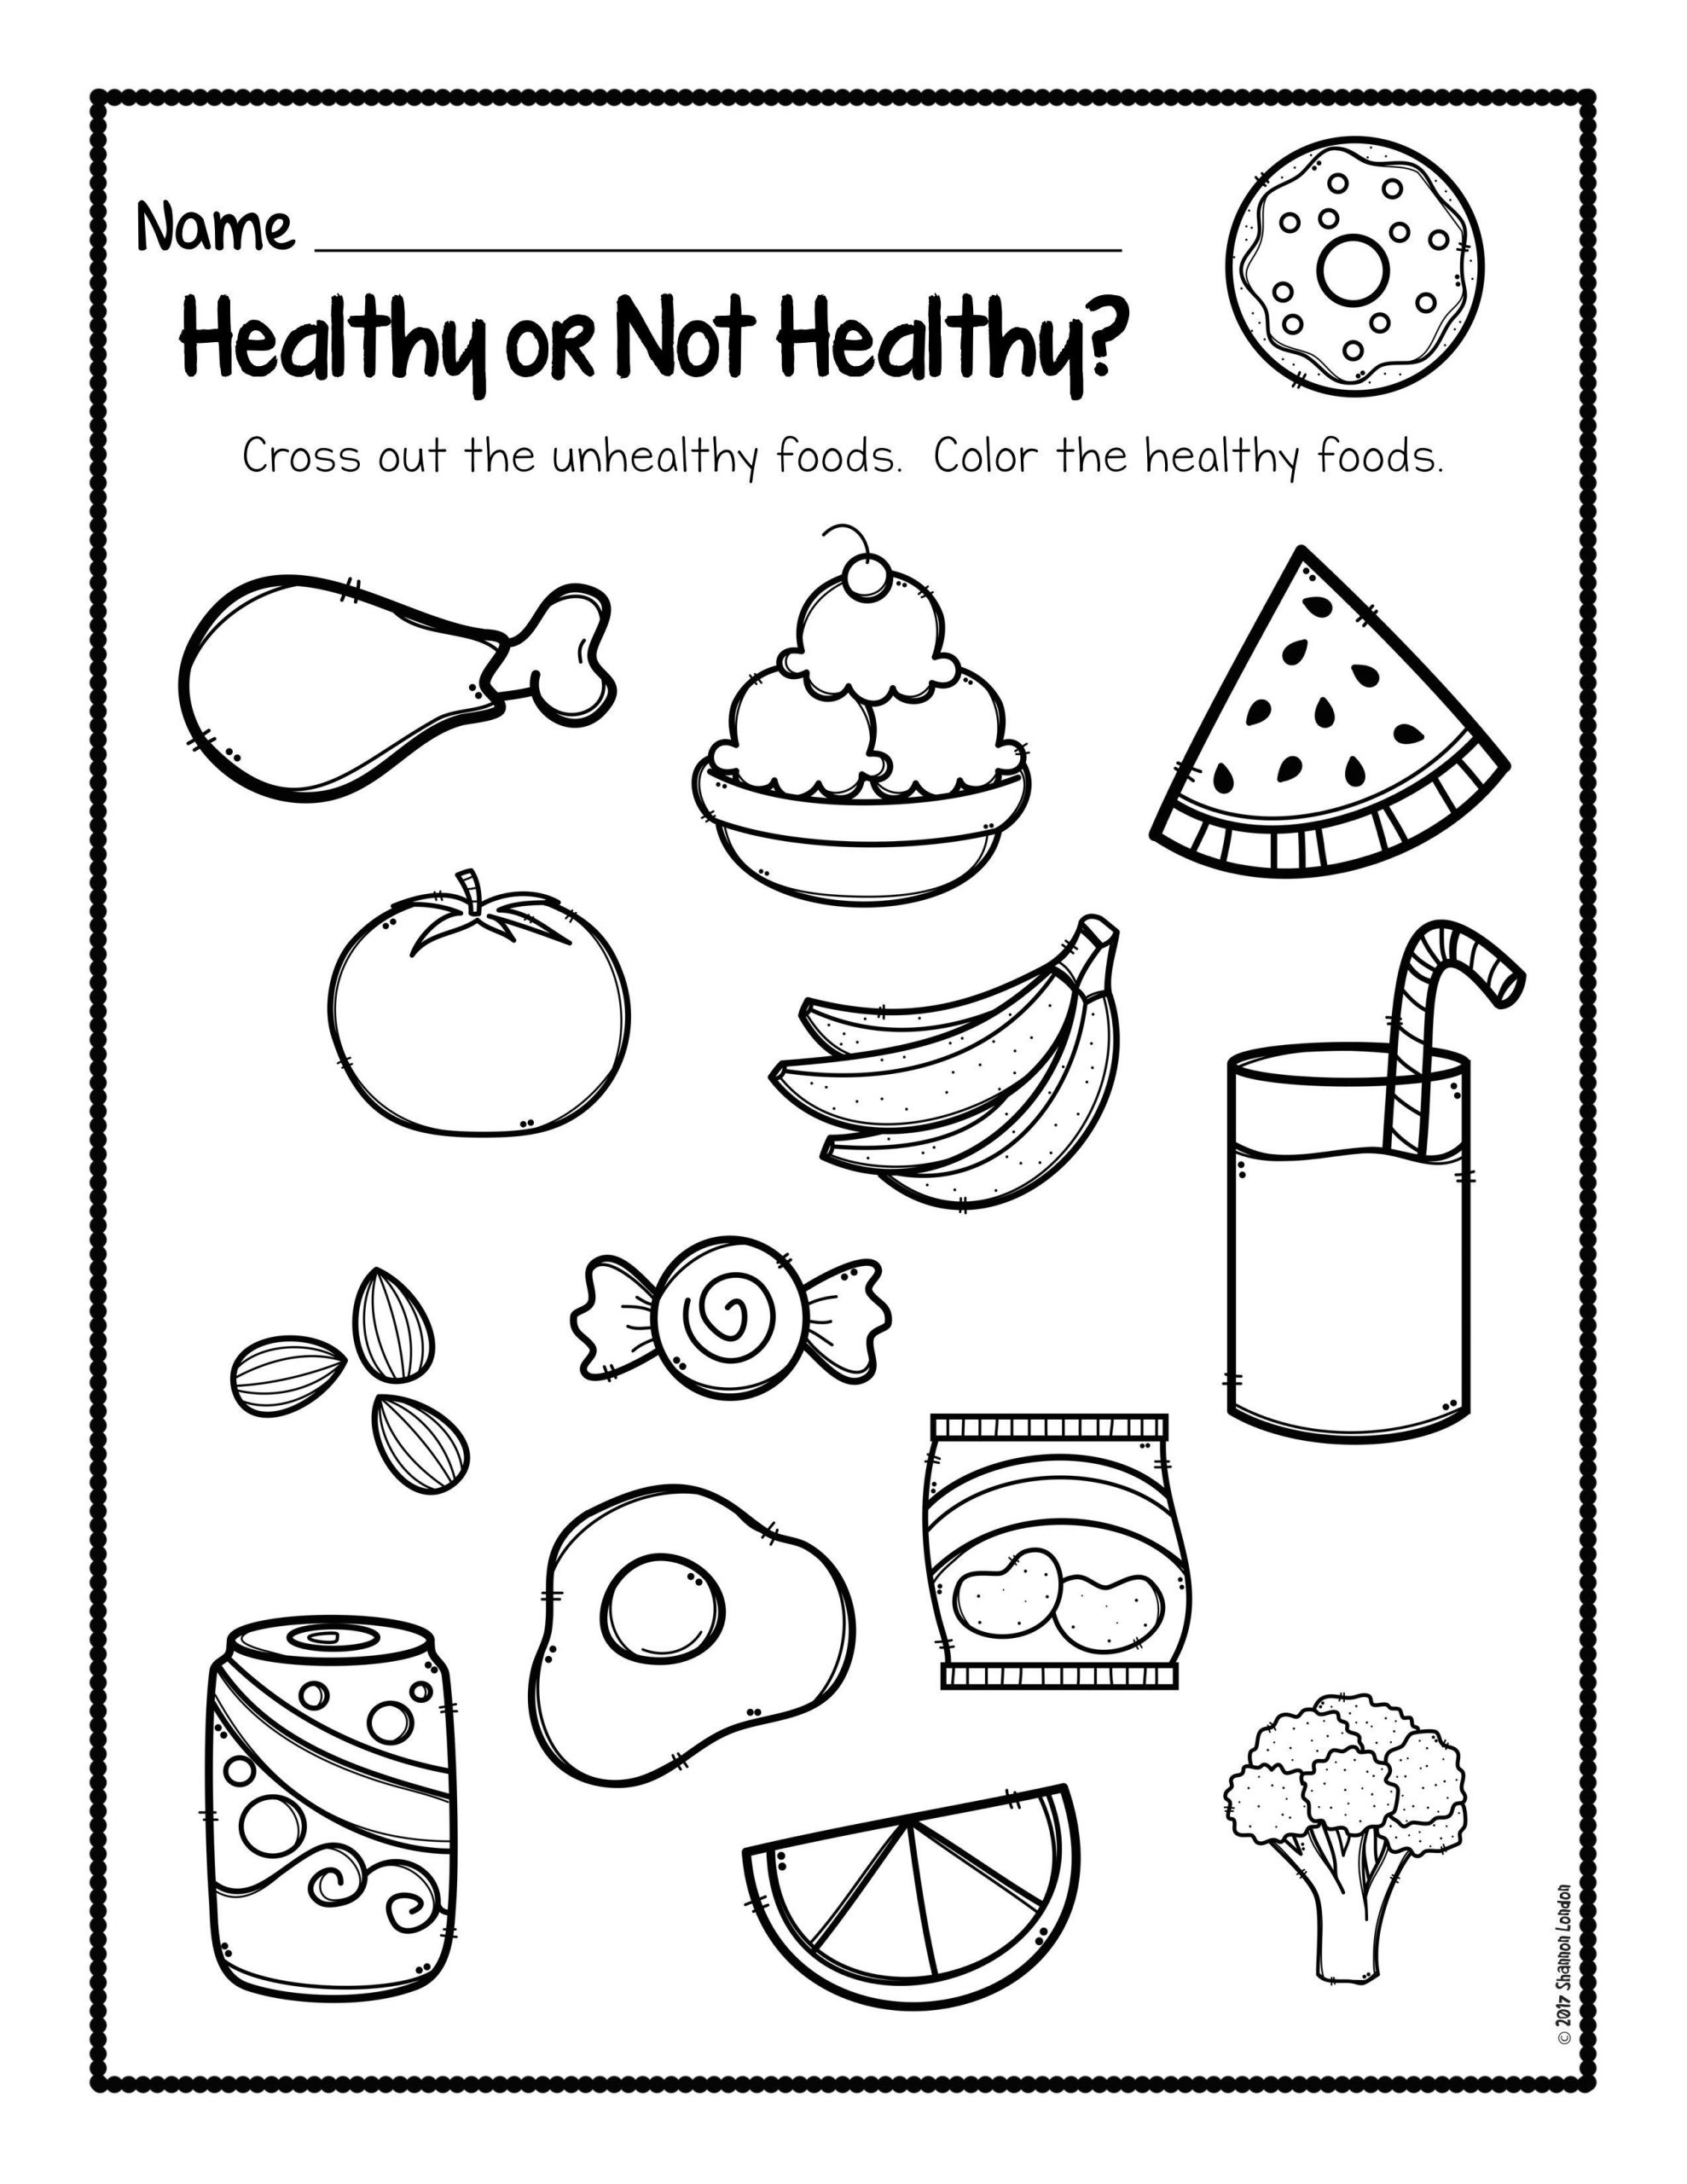 1st Grade Health Worksheets Pin by Michelle Streets On Summer Camps